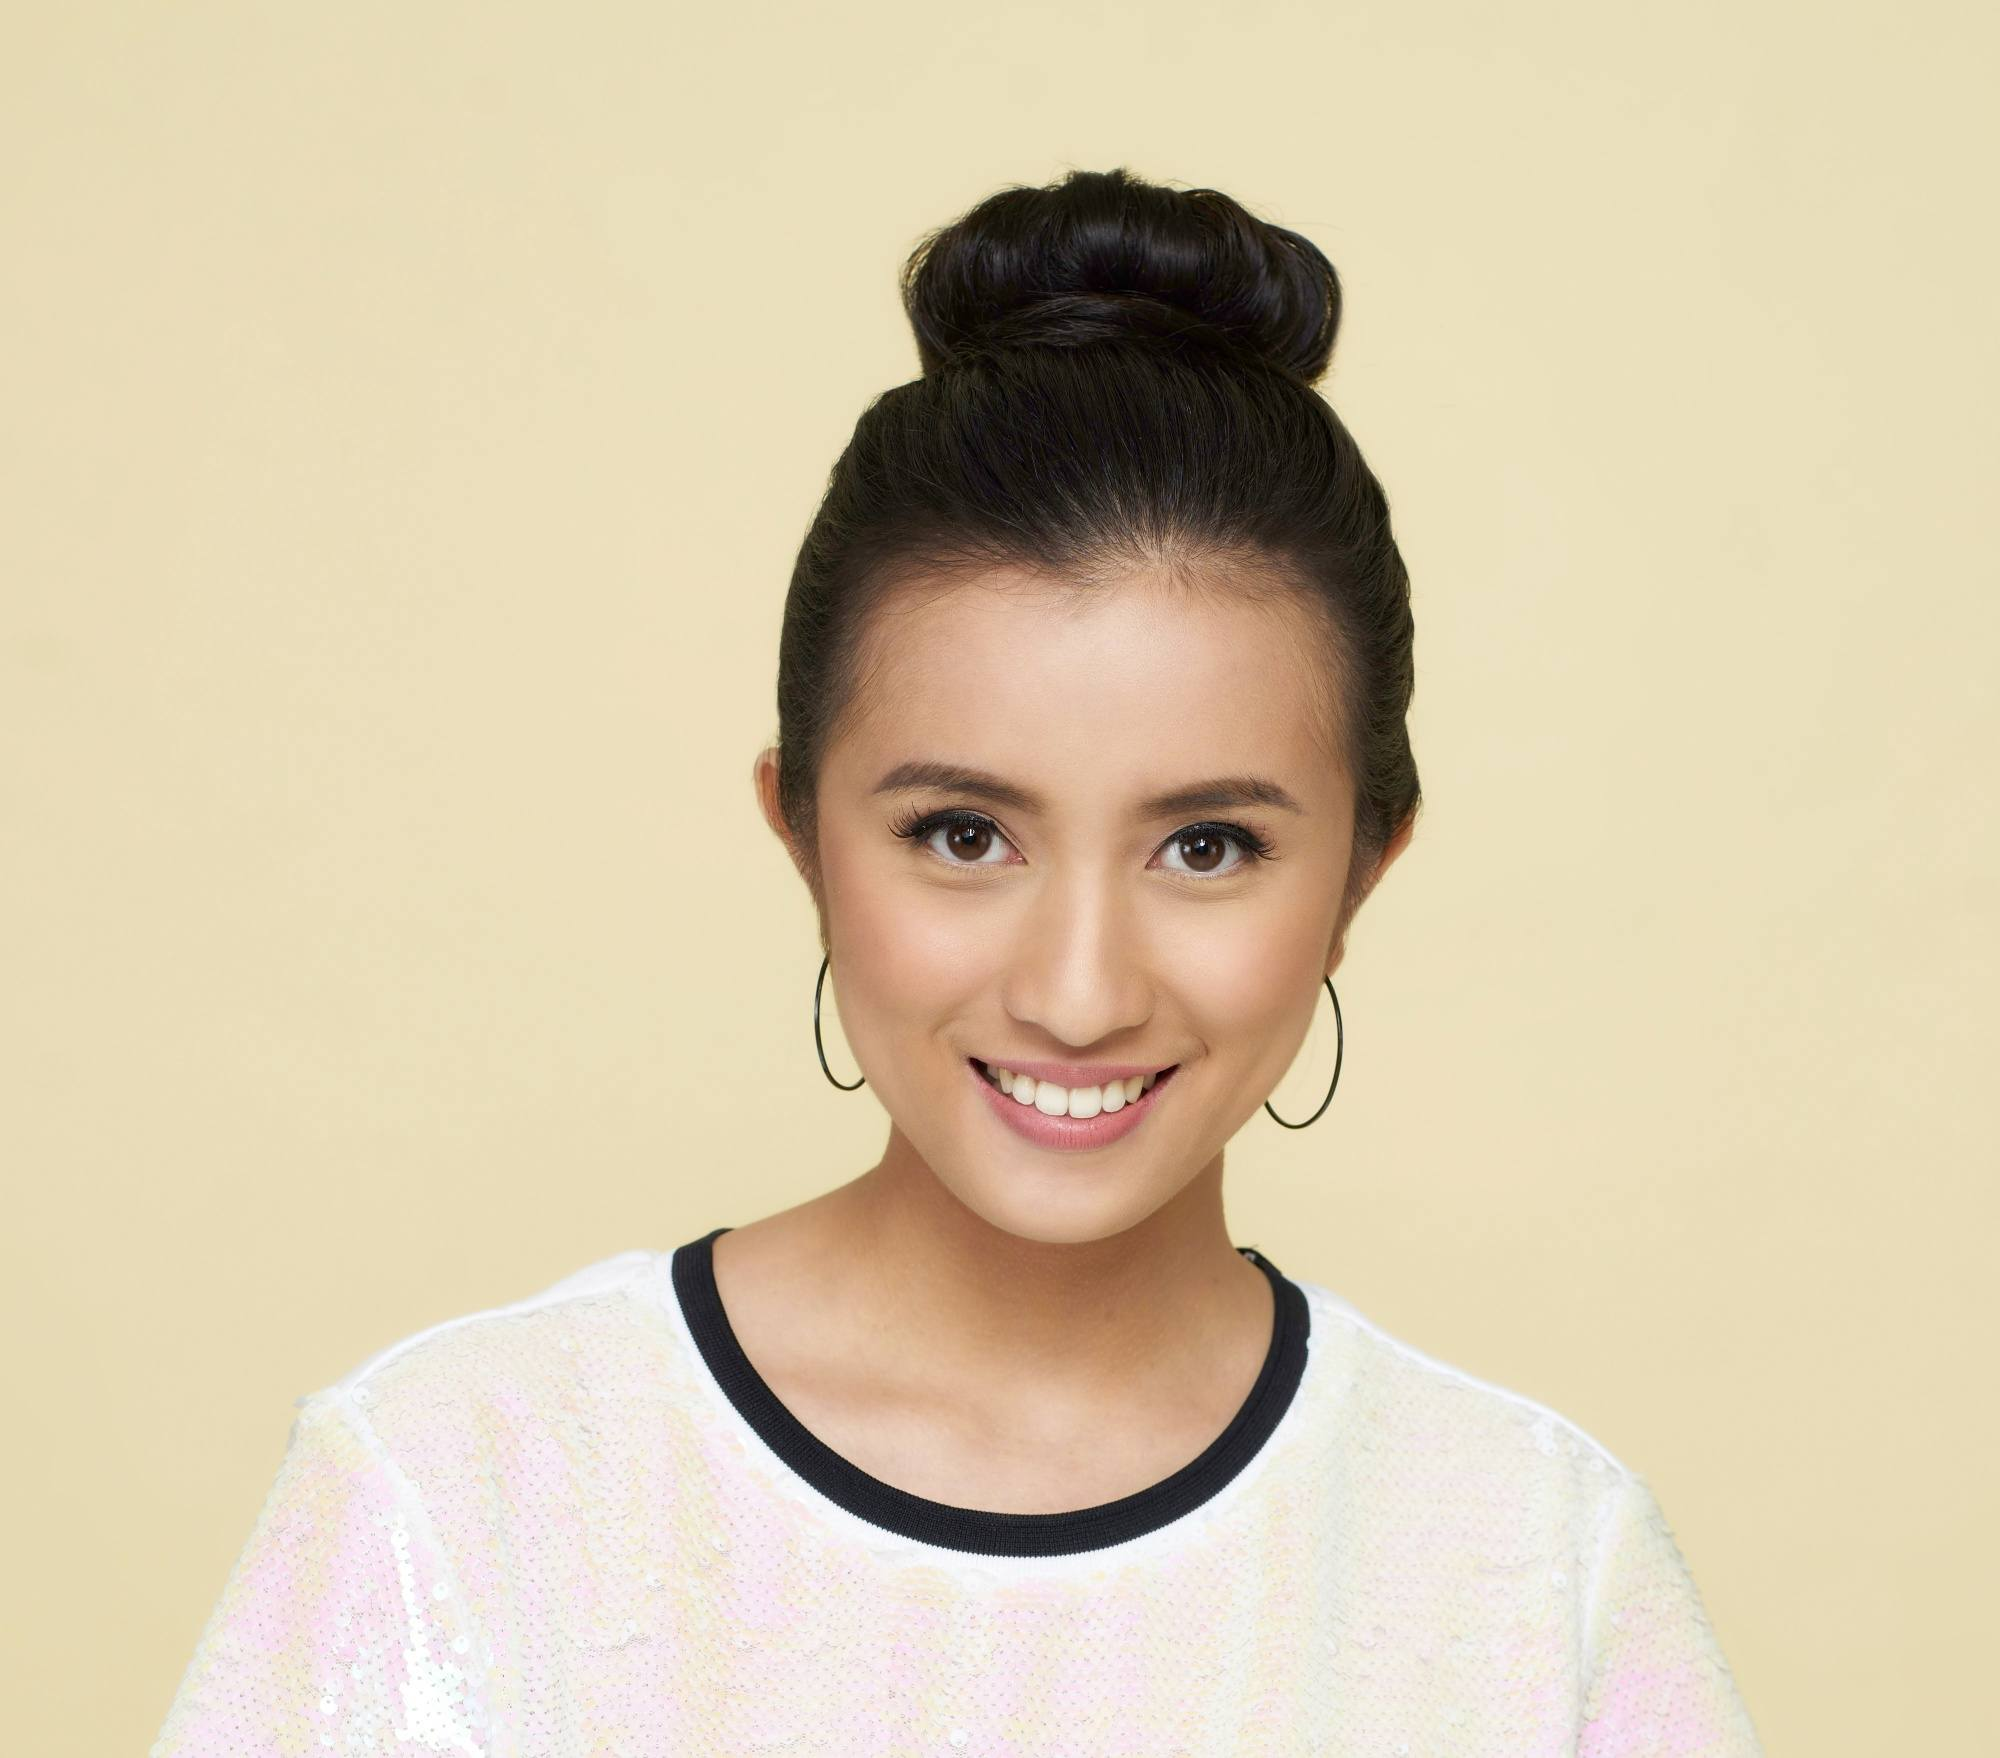 Asian woman with black hair in a hair donut bun wearing a white shirt and hoop earrings